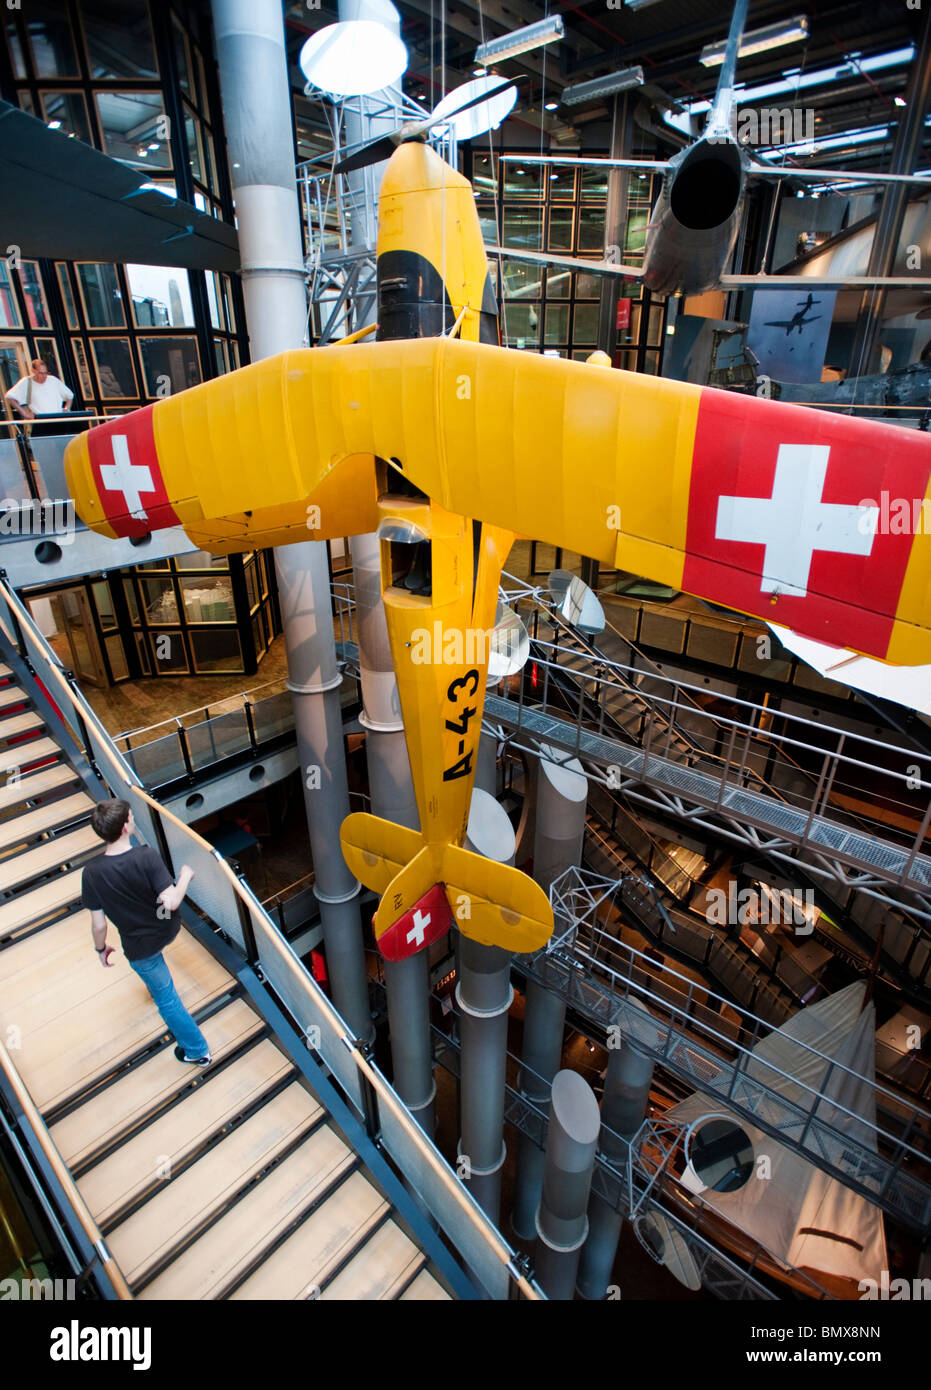 Historic aircraft on display at Deutsches Technikmuseum or German Technology Museum in Berlin Germany - Stock Image